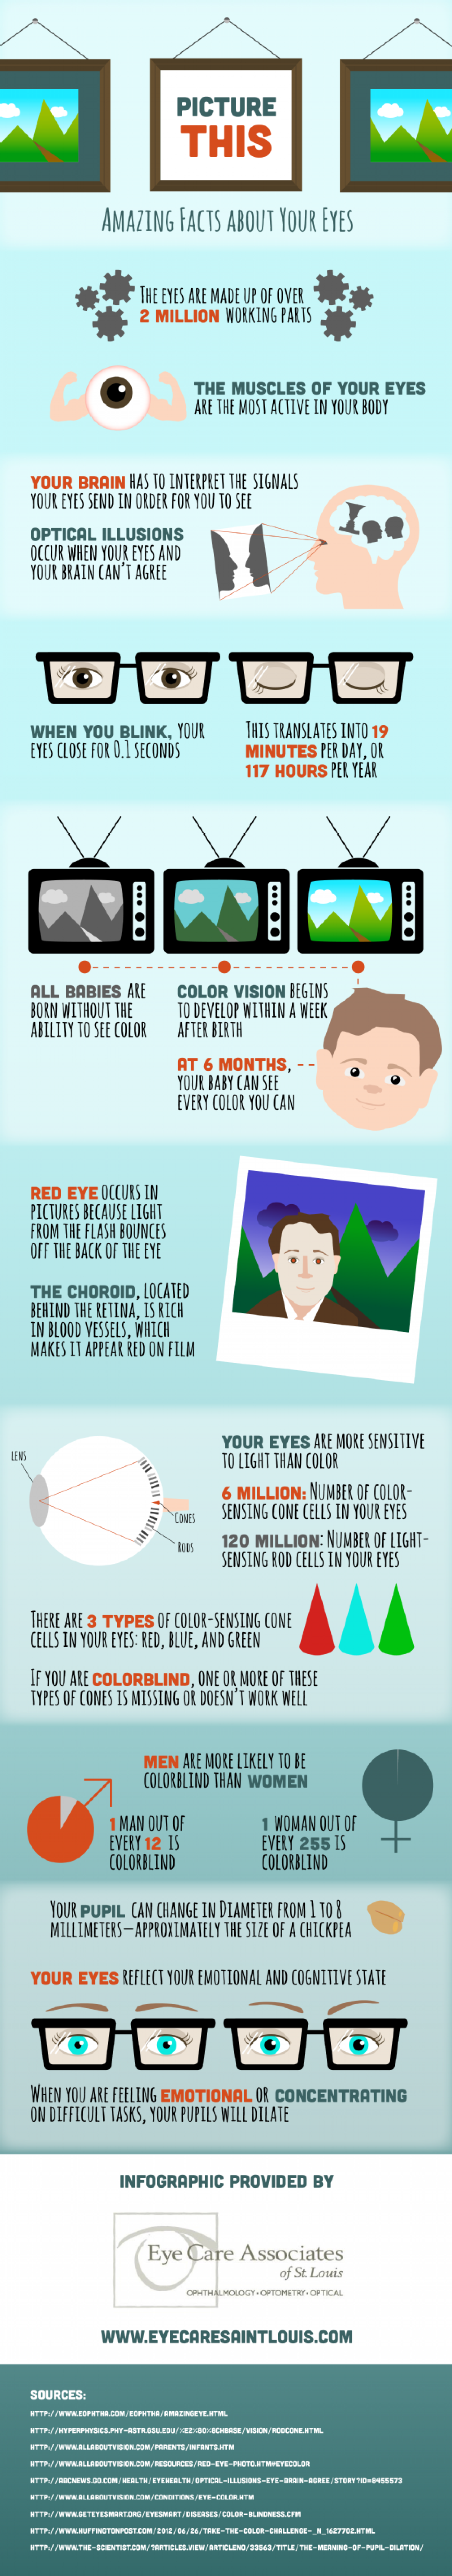 Picture This: Amazing Facts about Your Eyes Infographic